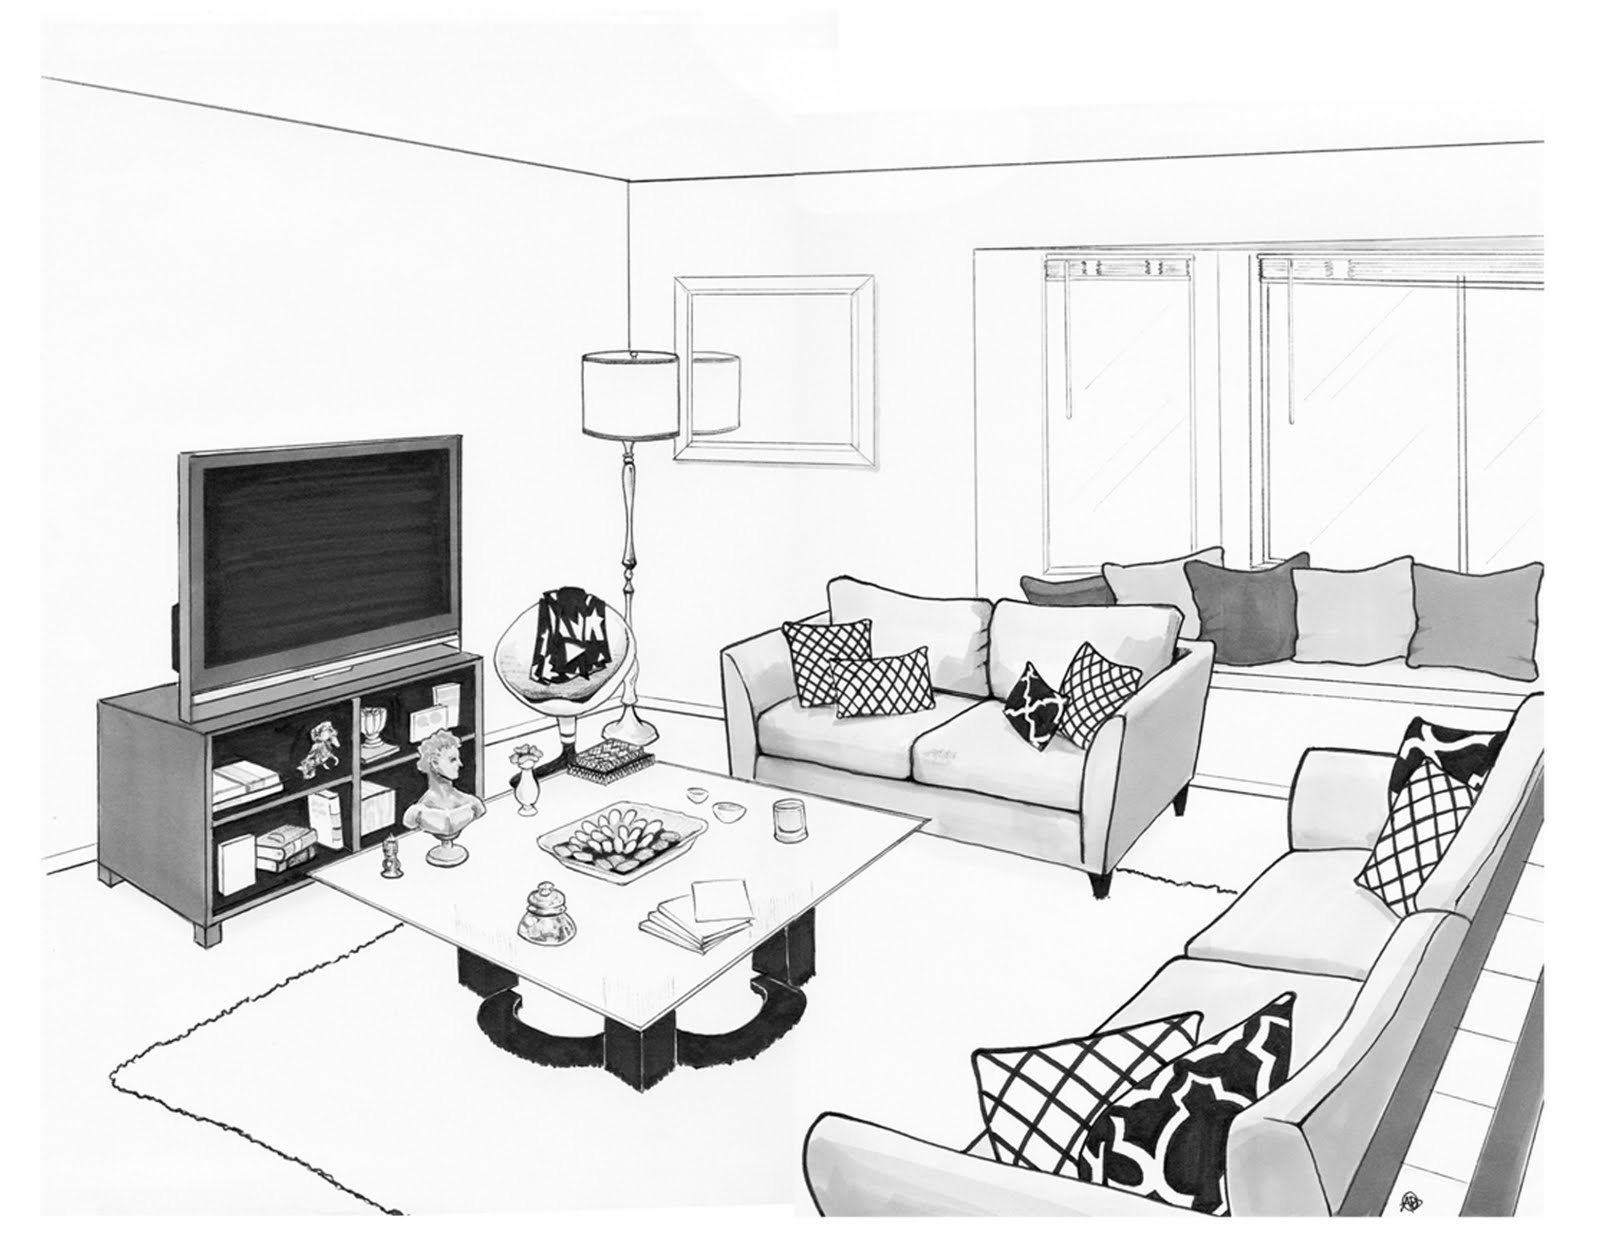 Drawn room cartoon house Drawing in 2017 Beautiful for